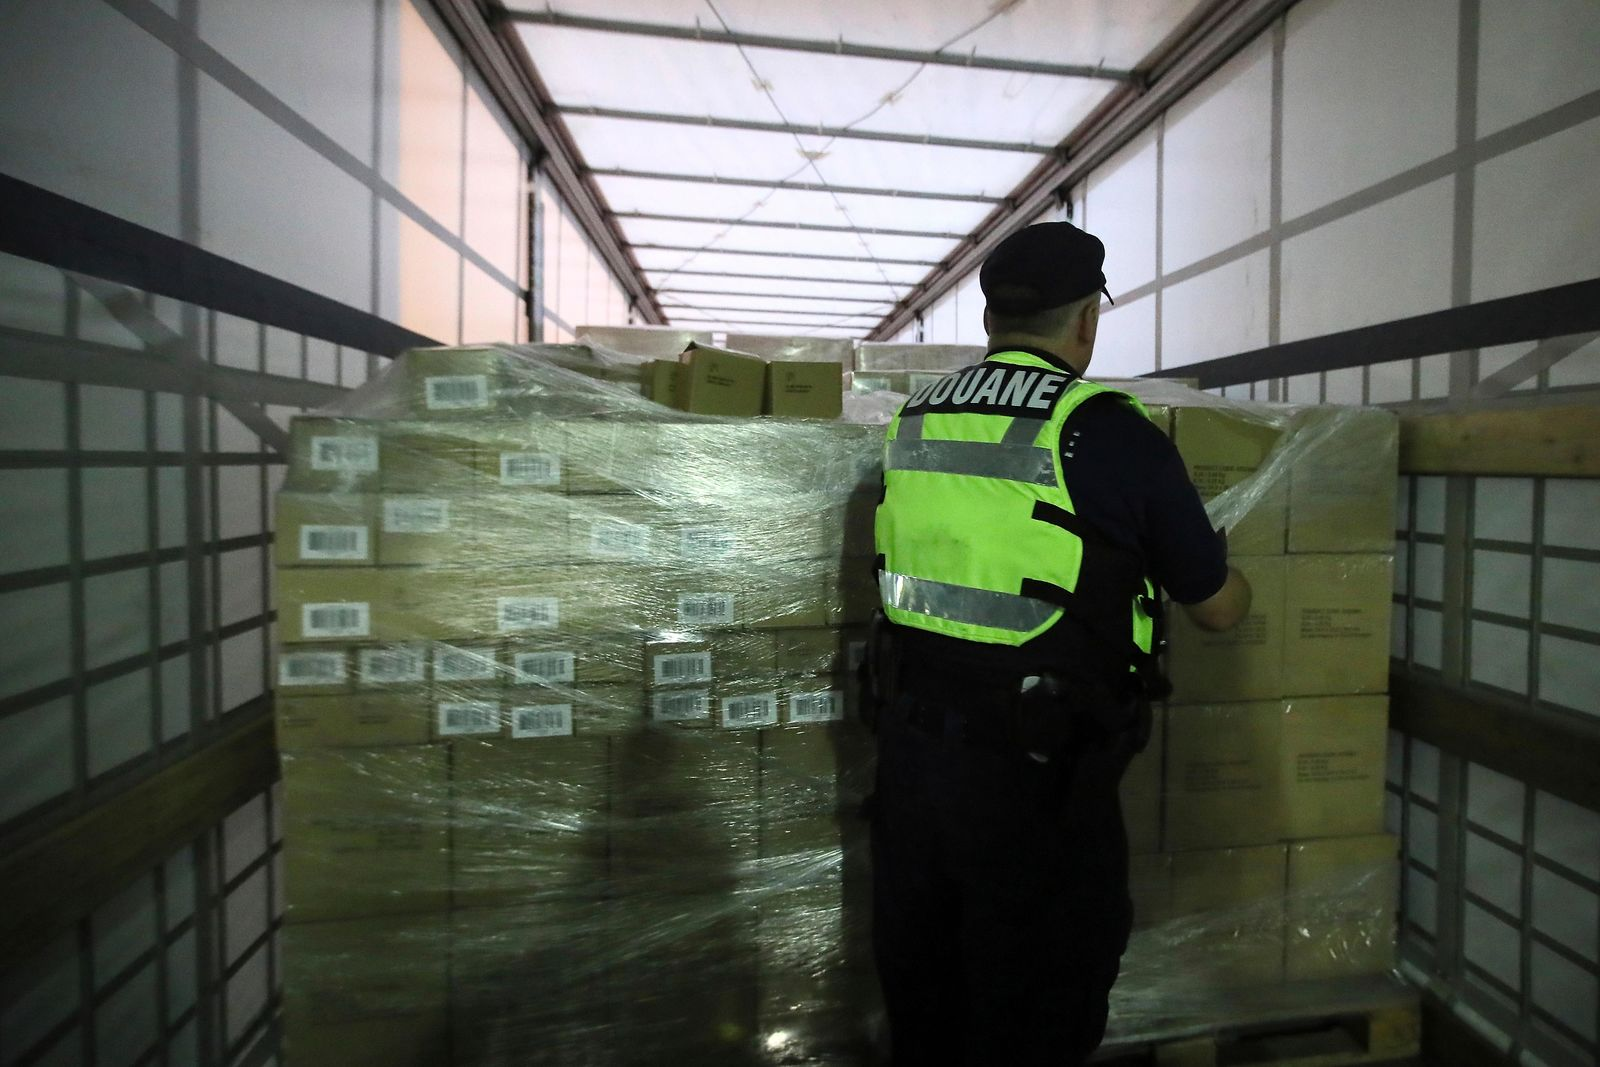 A French custom officer checks a truck coming from Britain's port of Portsmouth at the transit zone at the port of Ouistreham, Normandy, Thursday, Sept.12, 2019. France has trained 600 new customs officers and built extra parking lots arounds its ports to hold vehicles that will have to go through extra checks if there is no agreement ahead of Britain's exit from the EU, currently scheduled on Oct. 31. (AP Photo/David Vincent)